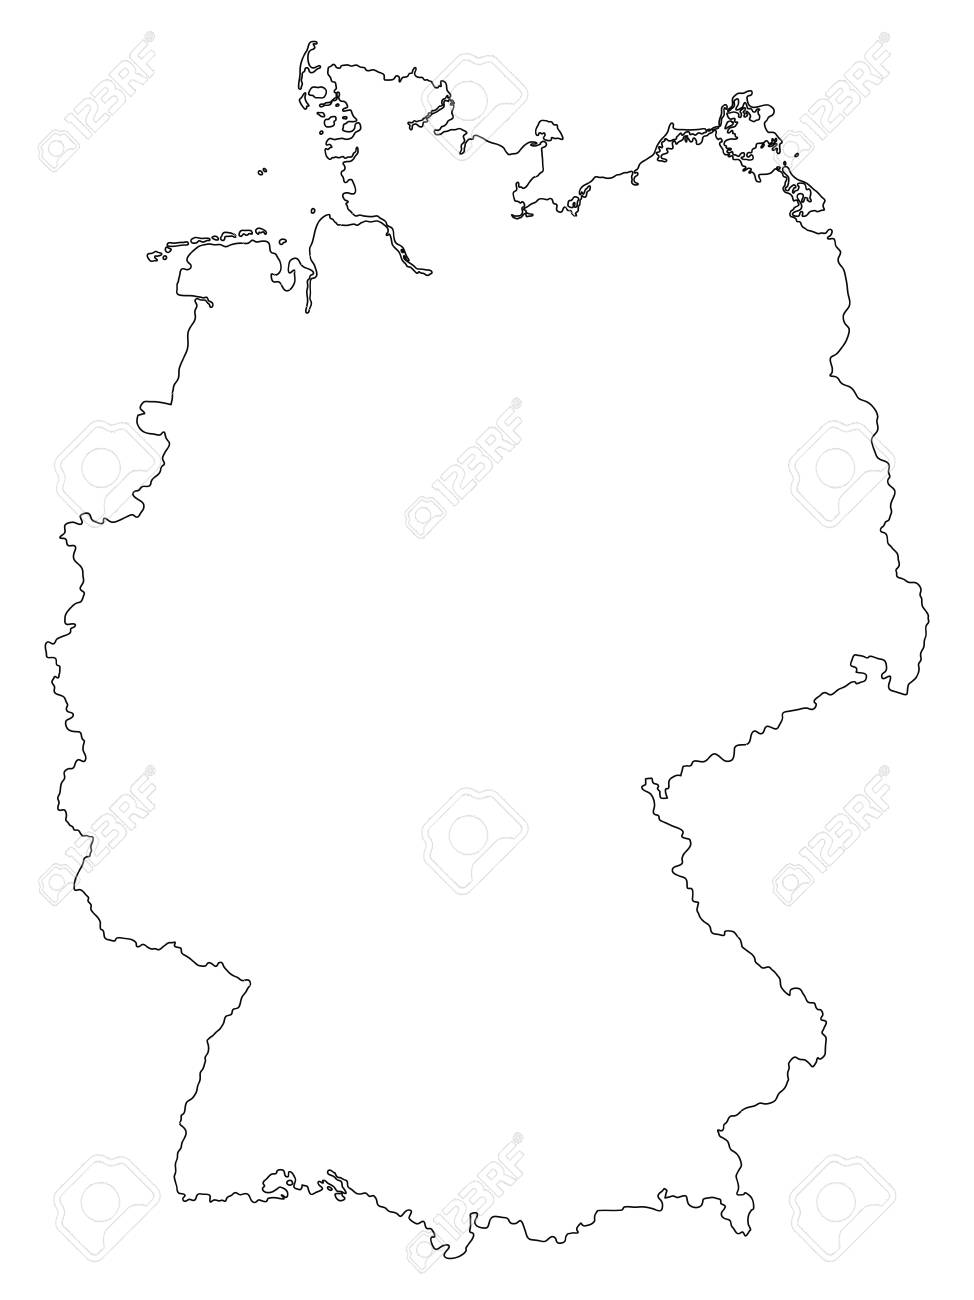 Outline Map Of Germany.Vector Germany Outline Map Isolated On White Background Royalty